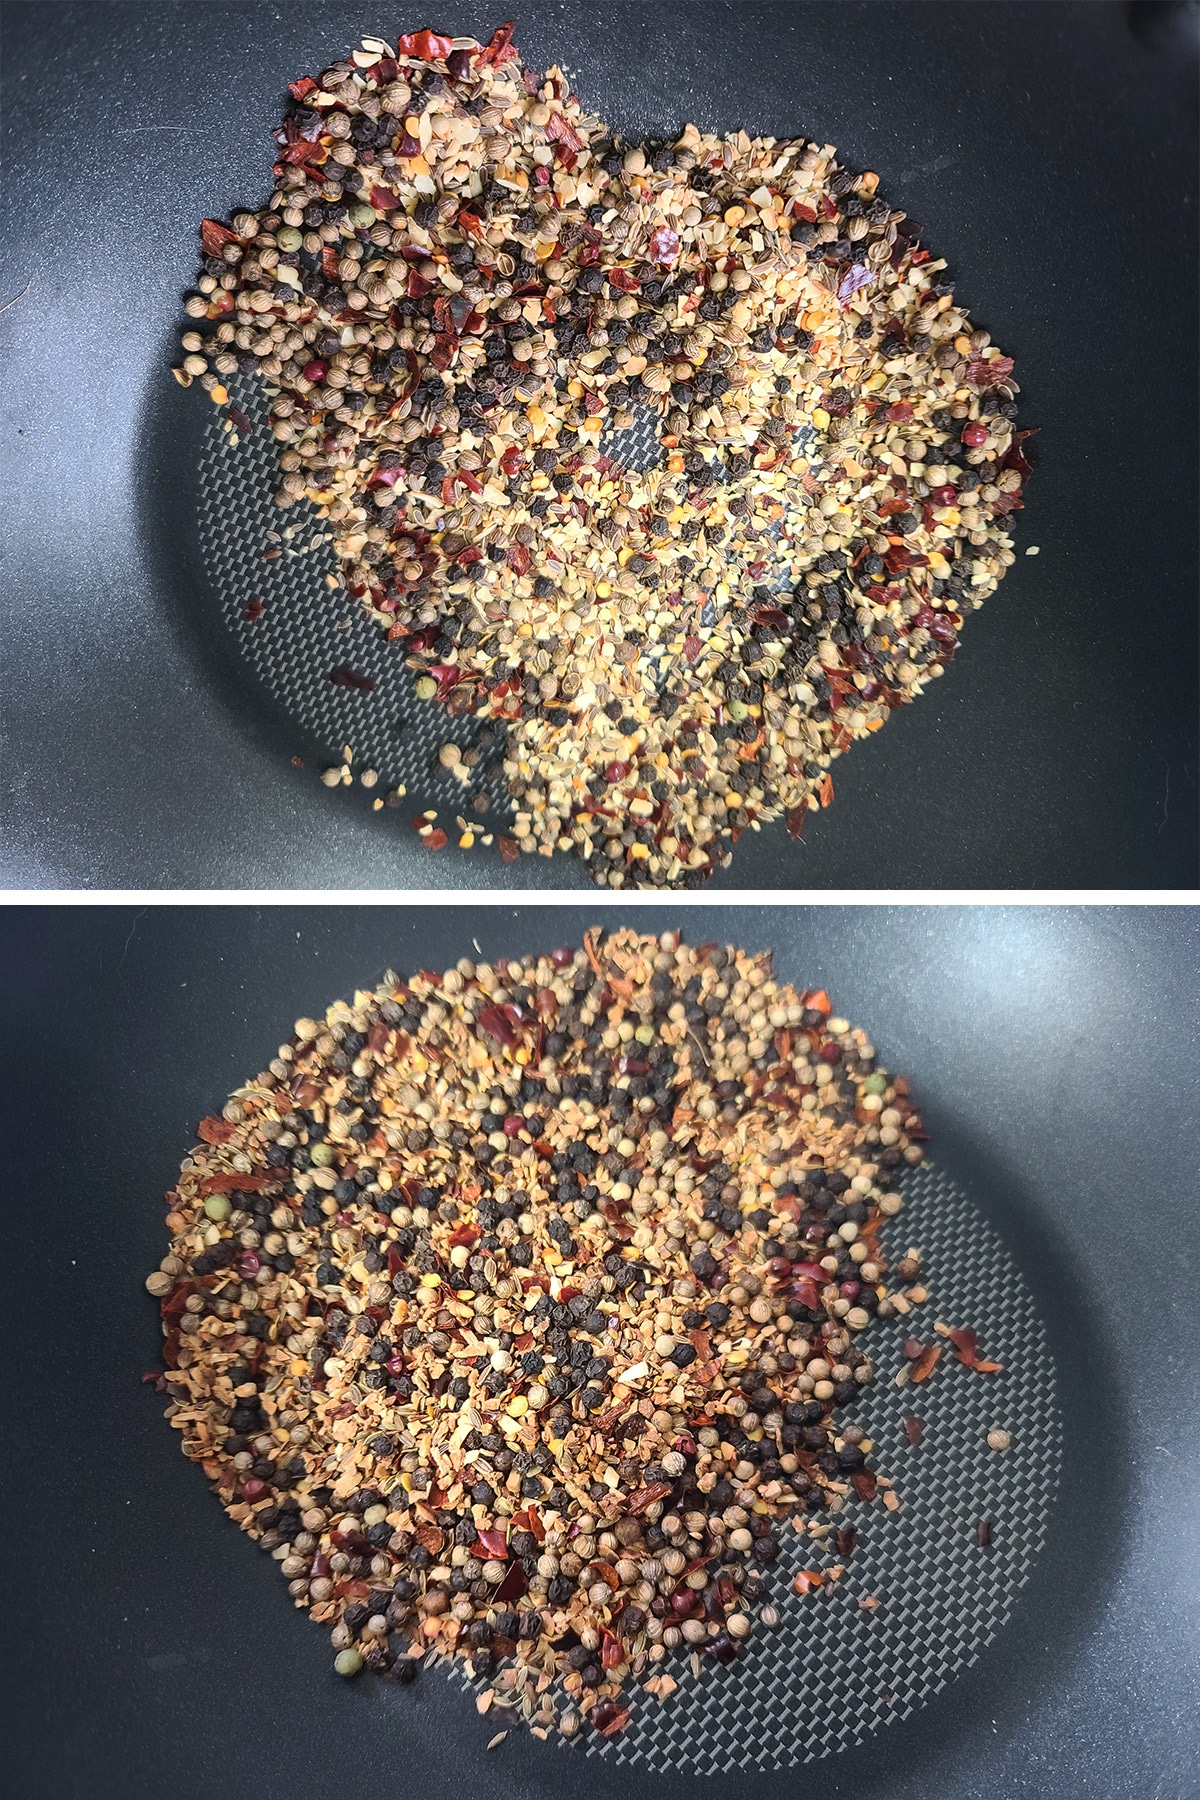 A two part compilation image showing whole spices in a nonstick pan, before and after toasting.